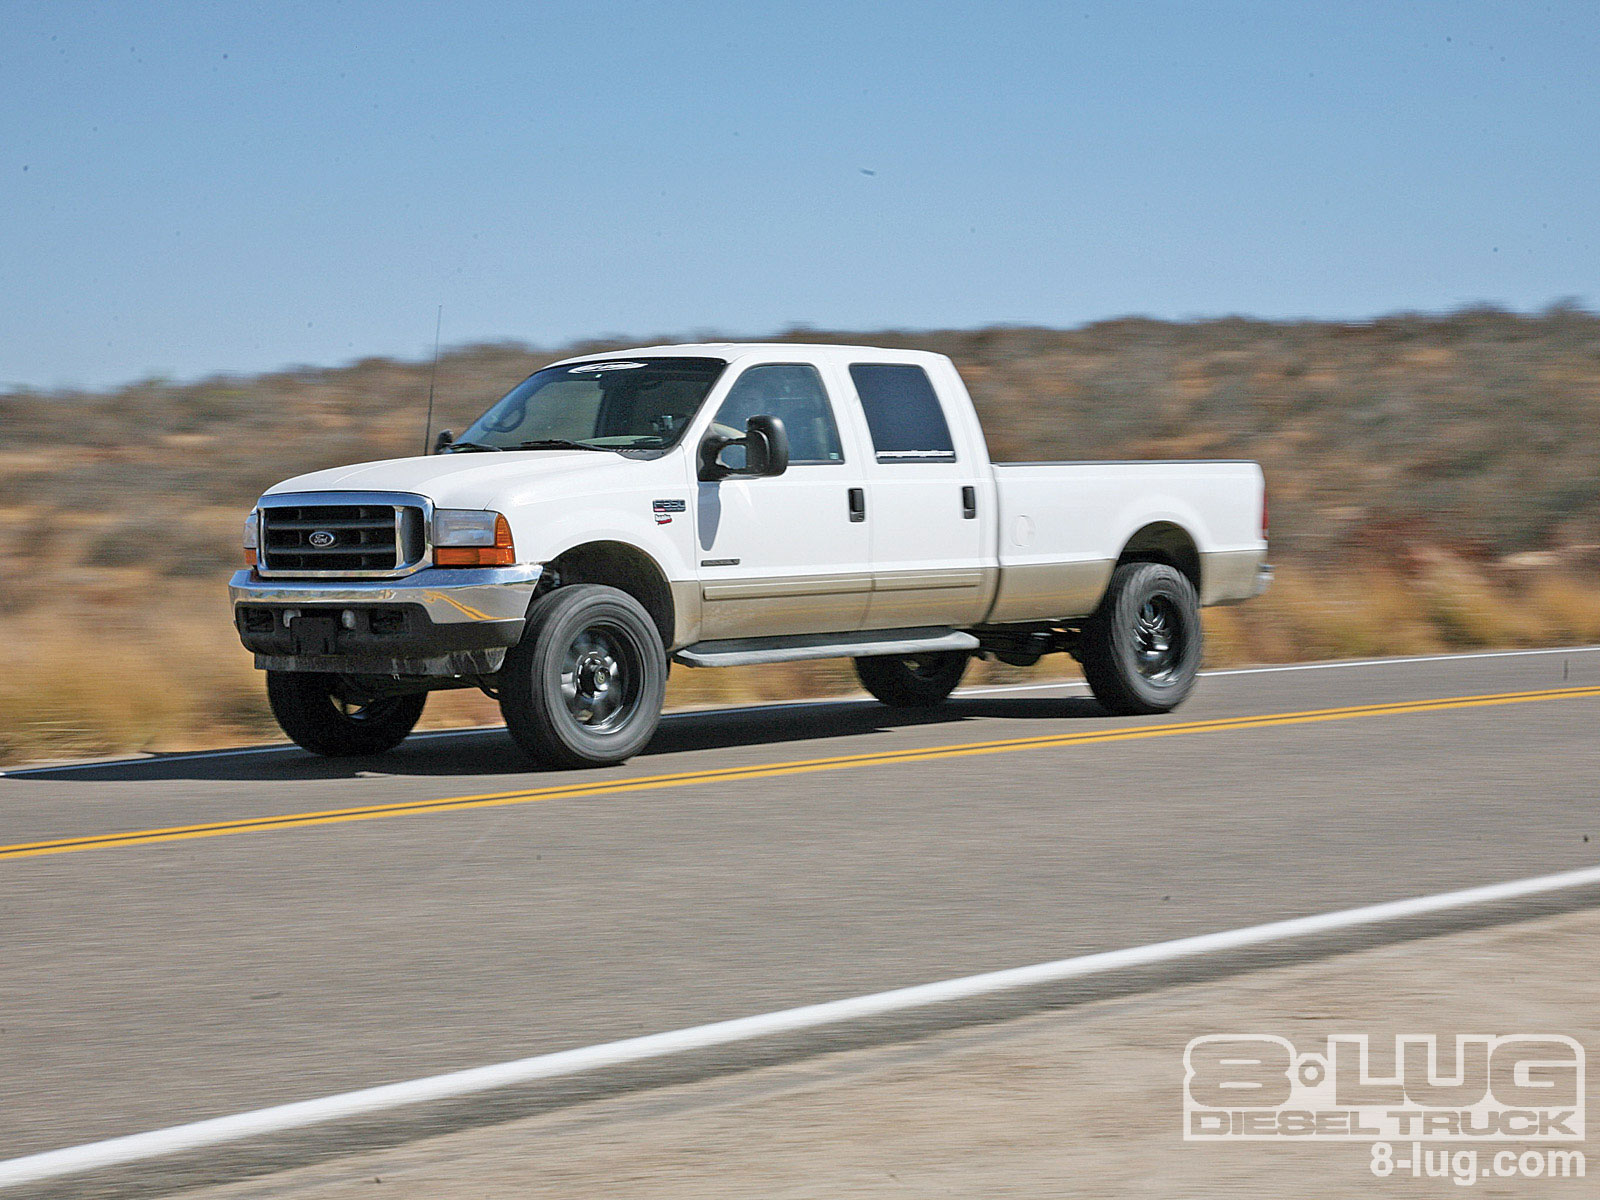 hight resolution of 0902 8l 01 pro comp suspension on ford f350 ford f350